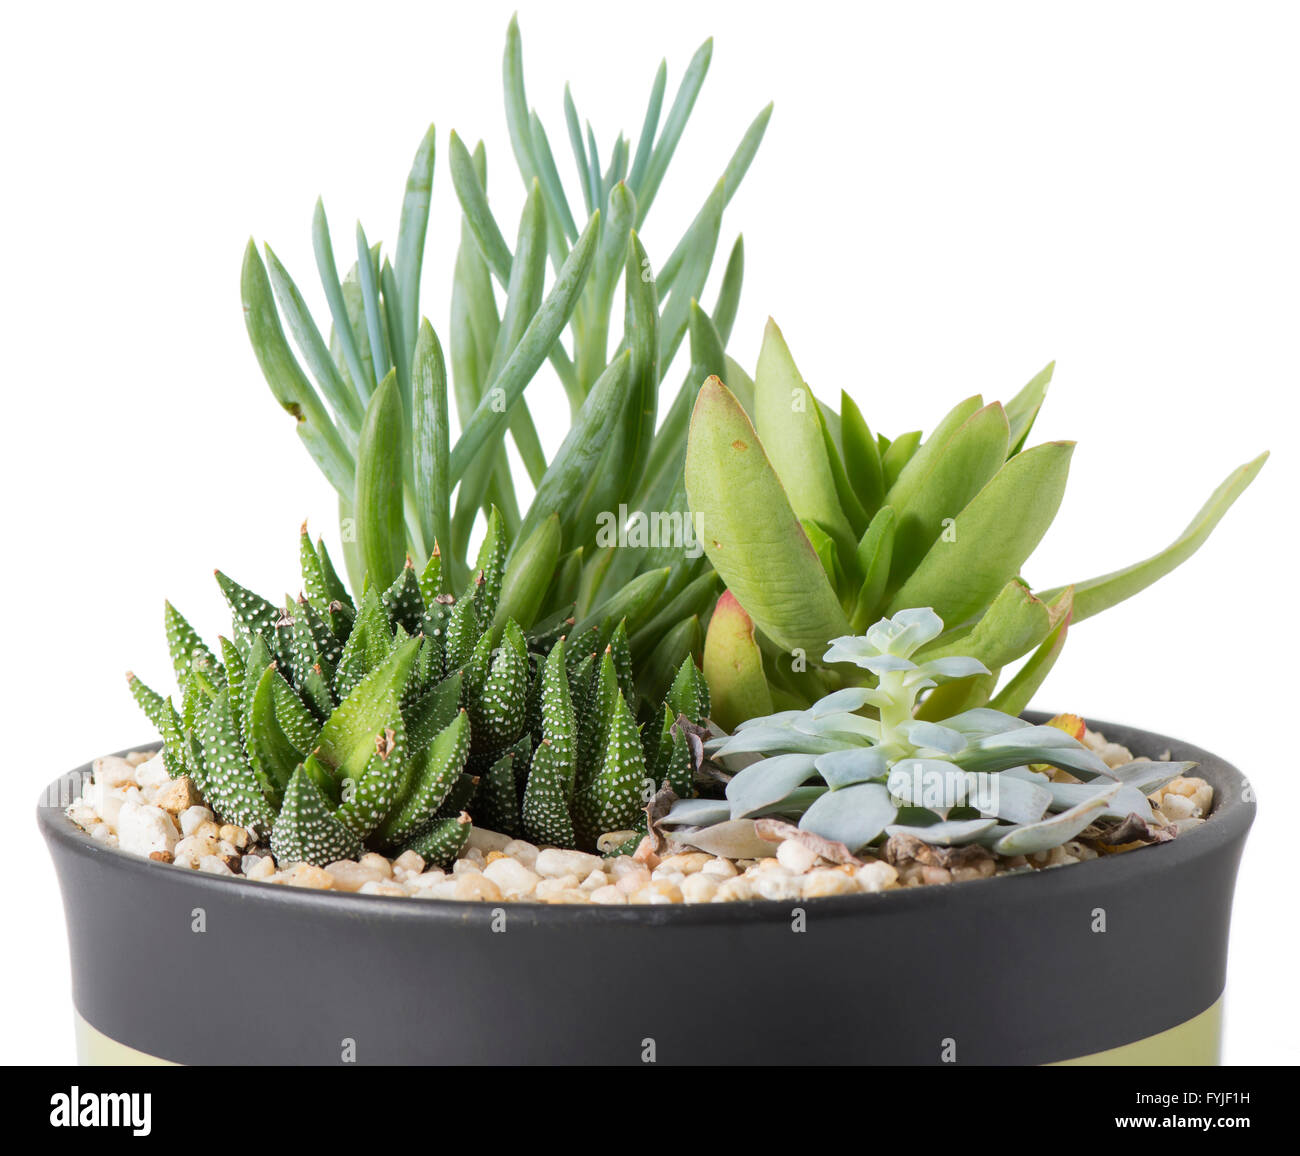 Indoor Plant Garden With Succulent Plants In A Pot With